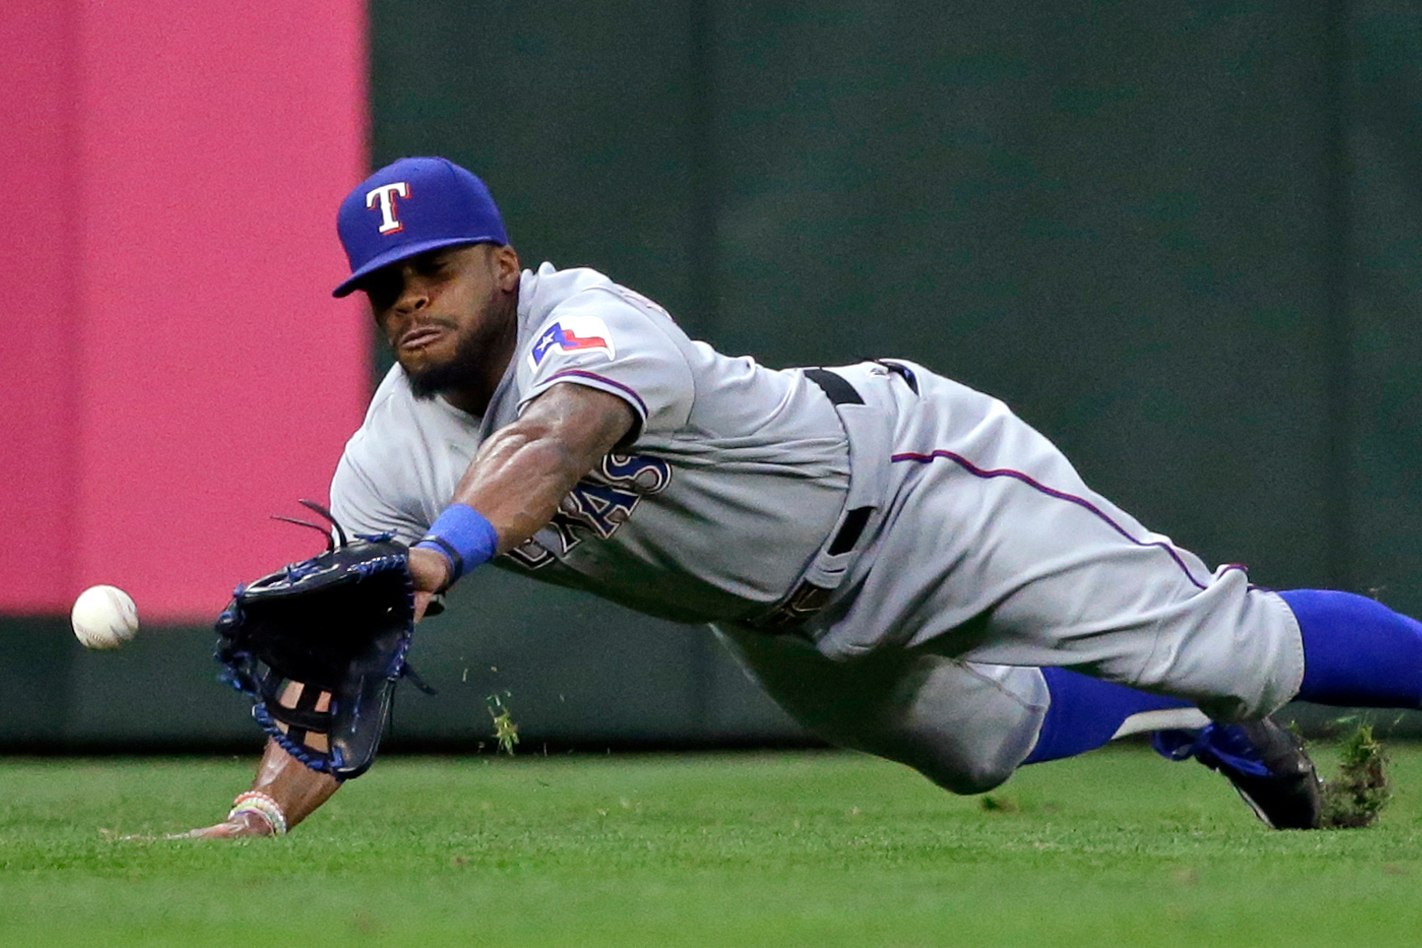 Texas Rangers center fielder Delino DeShields dives for, but misses, a double by Seattle Mariners' Seth Smith in the first inning of a baseball game Wednesday, Sept. 7, 2016, in Seattle.